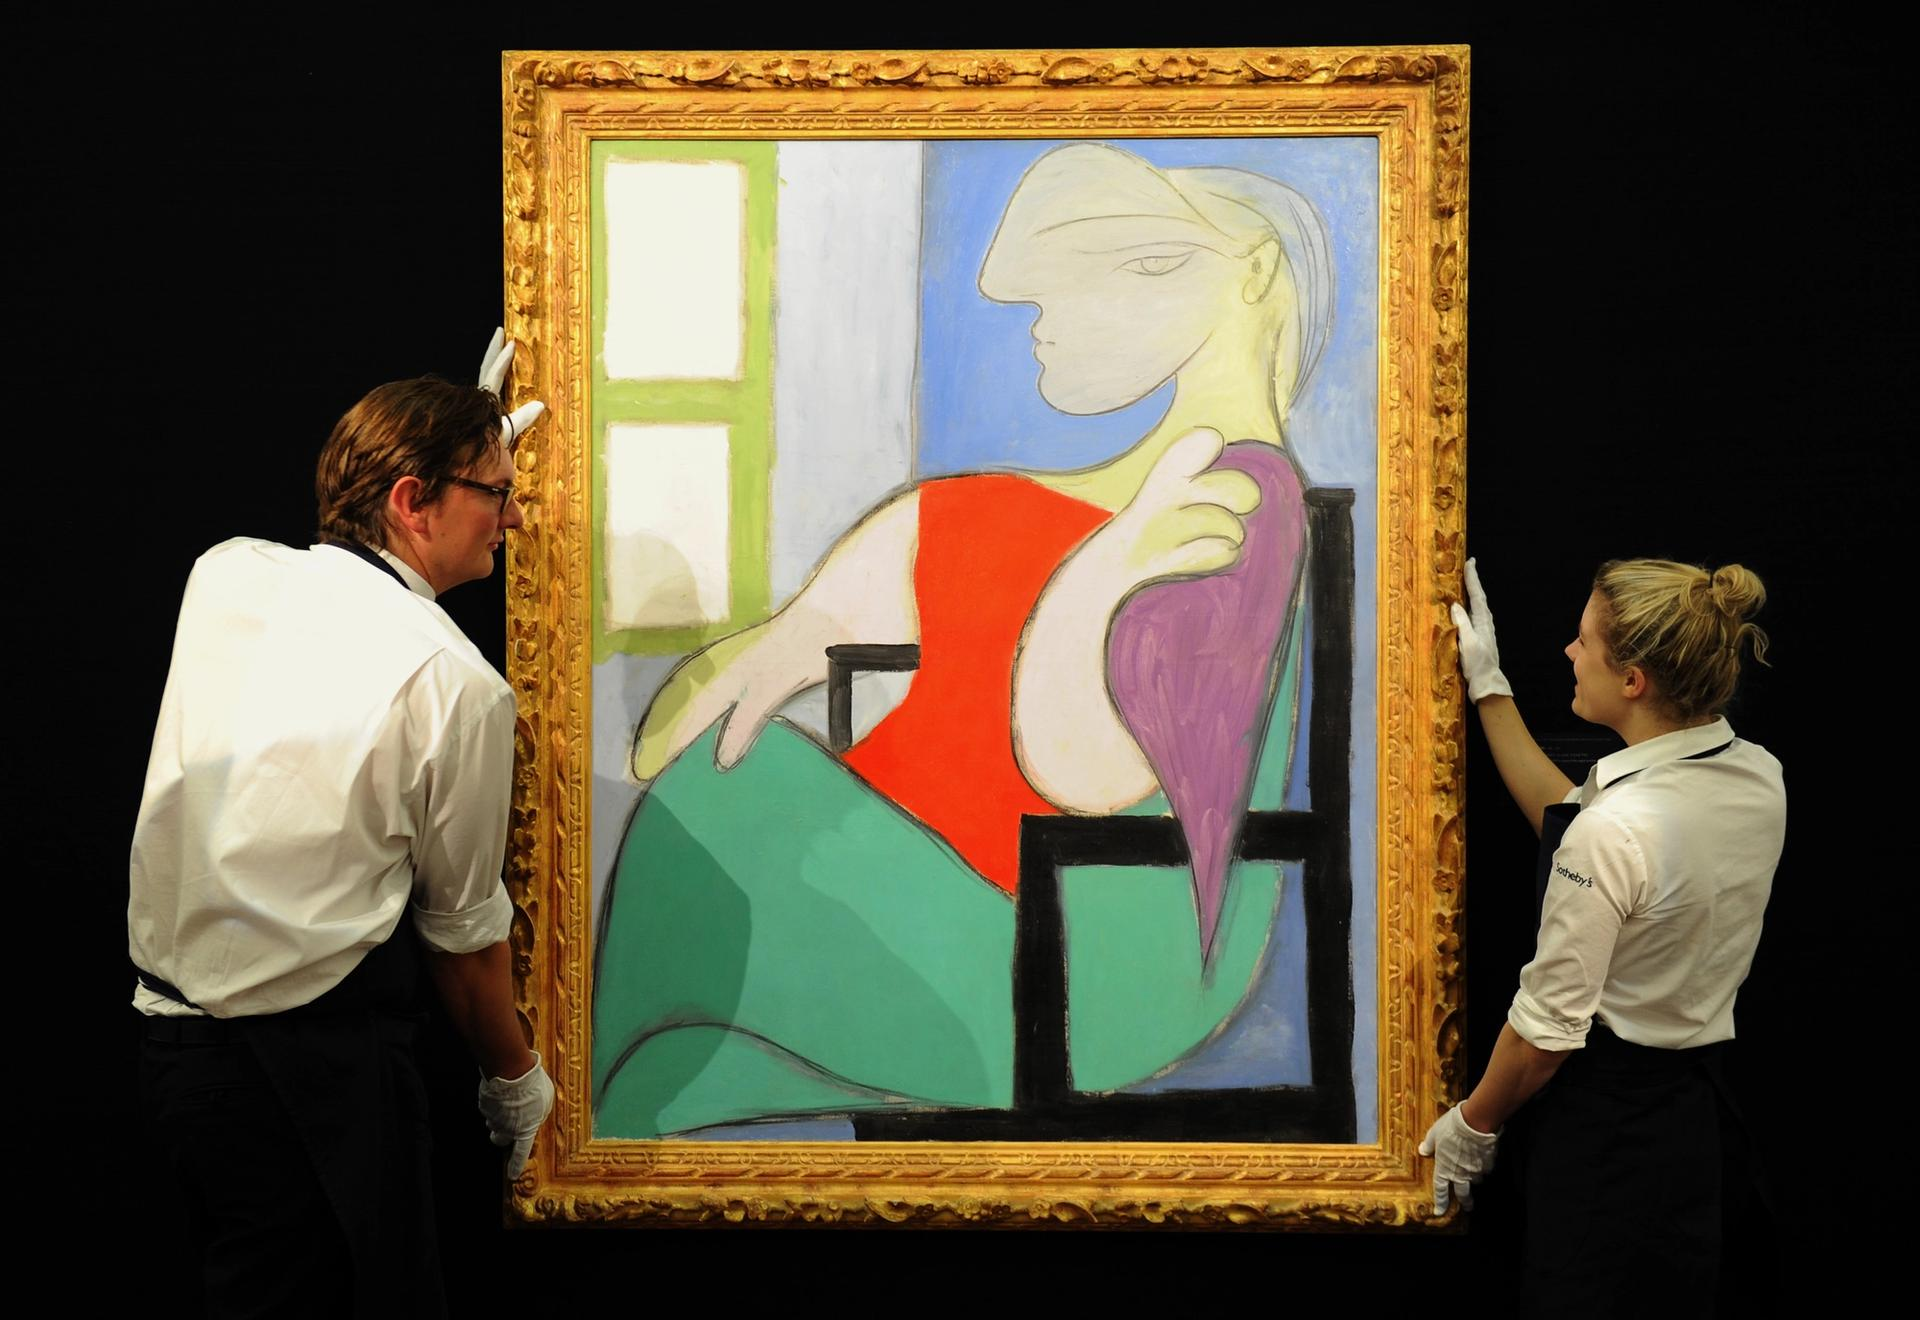 Picasso's Femme Assise Pres d'une Fenetre (Woman Sitting Near a Window) last came to auction in February 2013, when it sold for £28.6m ($44.8m) at Sotheby's London to a third-party guarantor Photo: Anthony Devlin/PA Wire